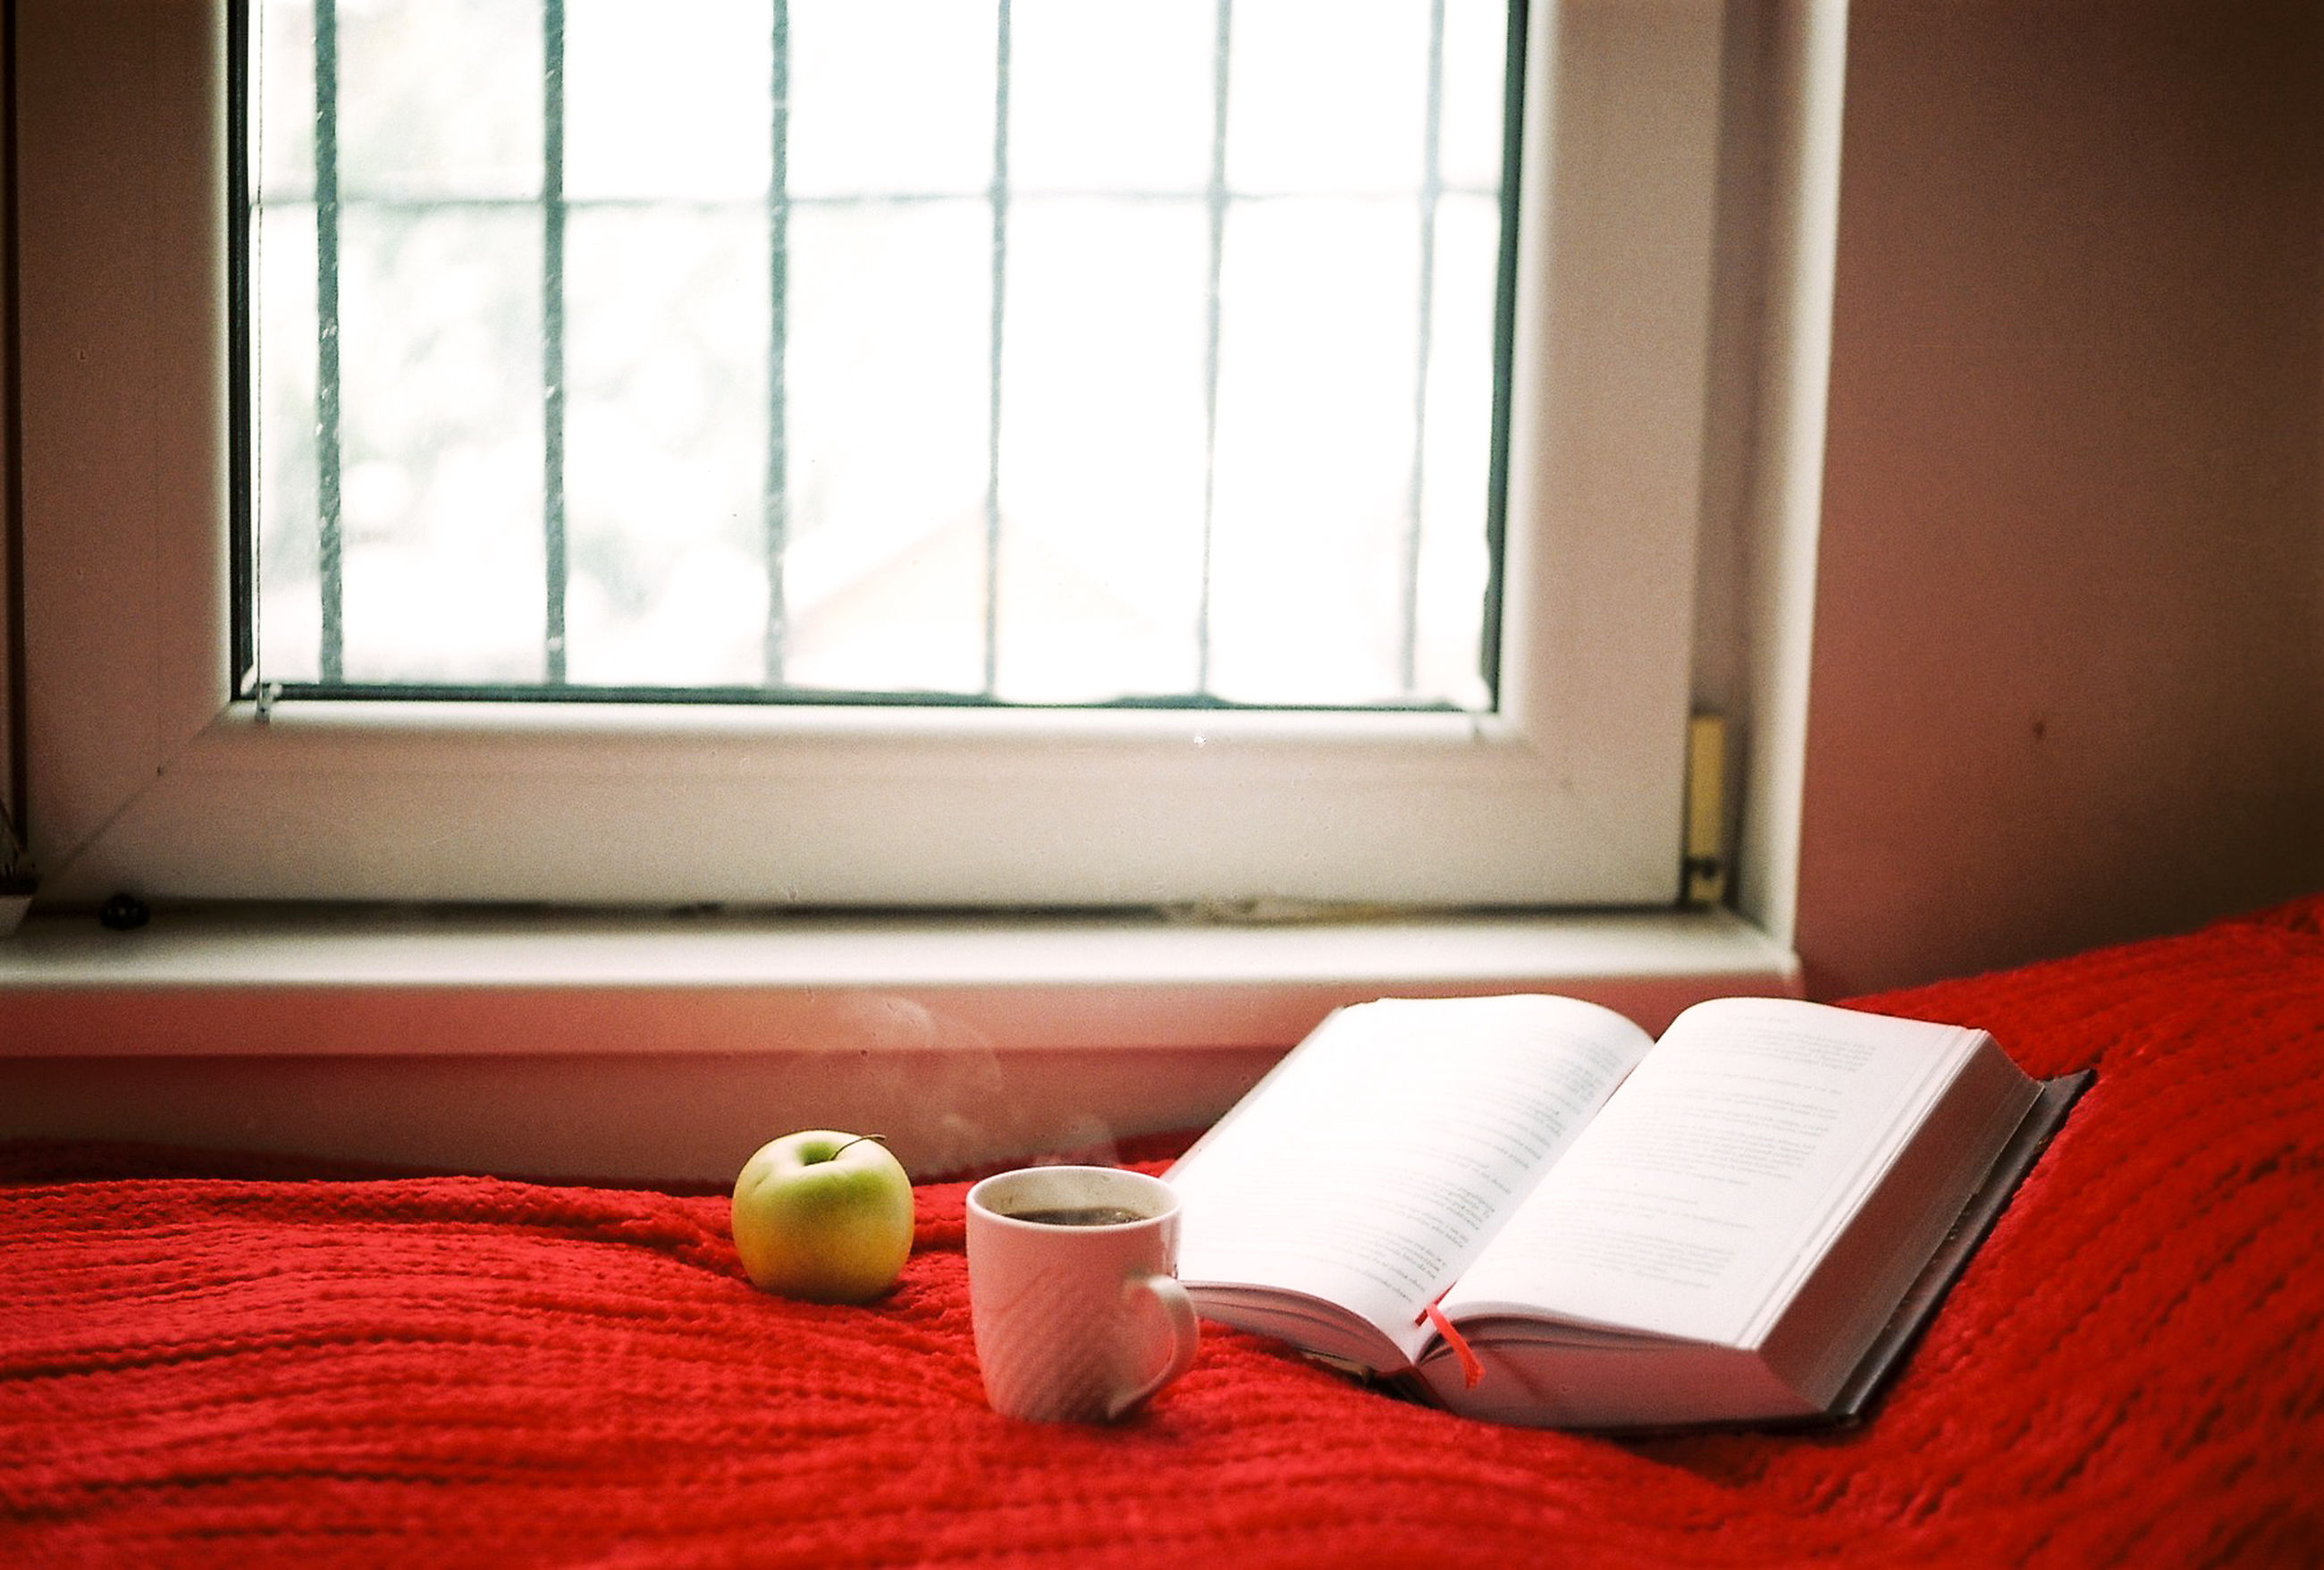 window, room, indoors, red, interior design, window covering, floor, flooring, furniture, home interior, domestic room, publication, no people, book, table, day, food and drink, cup, living room, sunlight, house, lifestyles, mug, bed, paper, nature